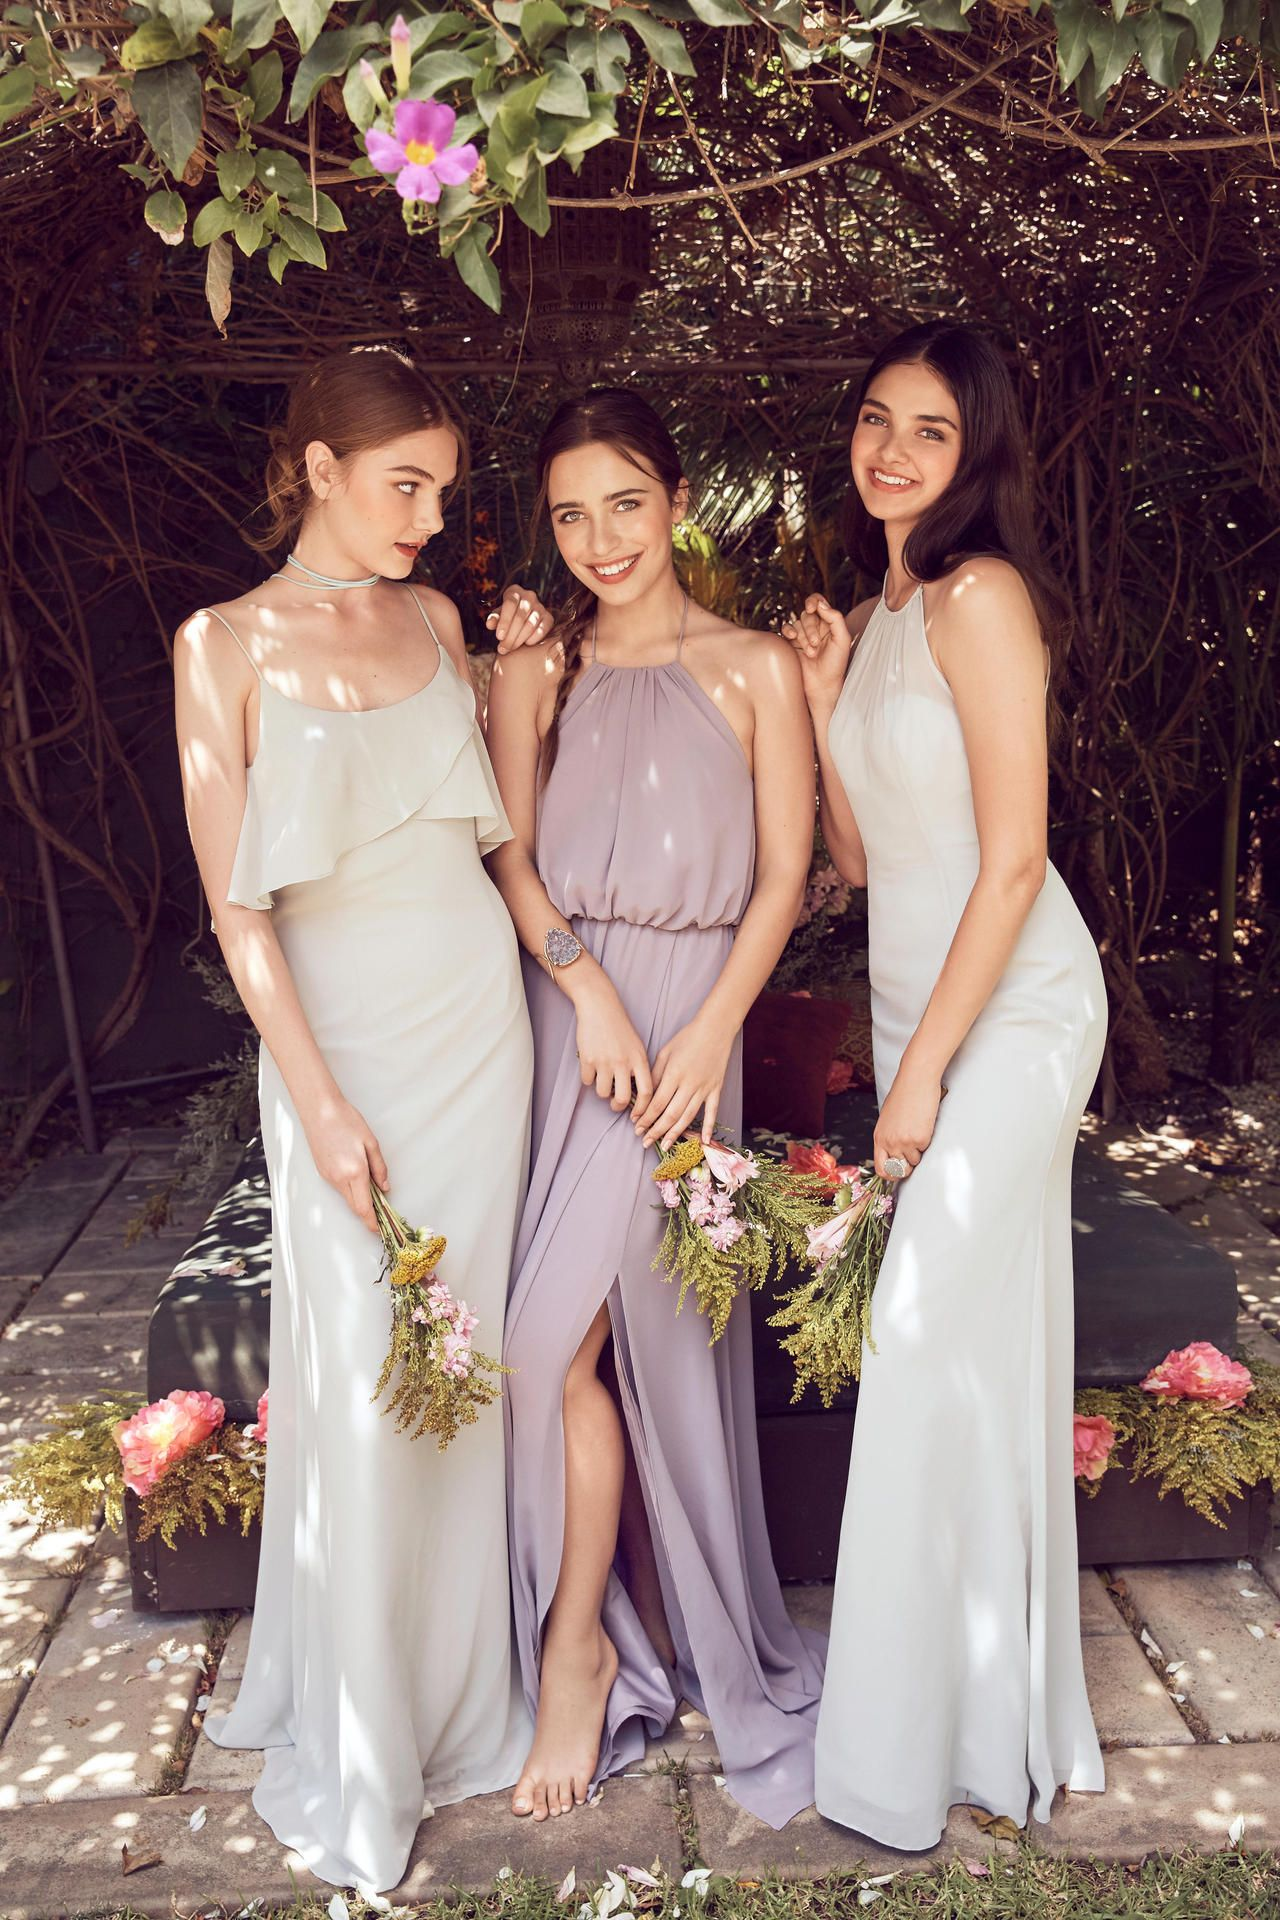 Trending for 2017 muted bridesmaid dresses with a whole lotta 90s trending for 2017 muted bridesmaid dresses with a whole lotta 90s vibe sponsored ombrellifo Image collections